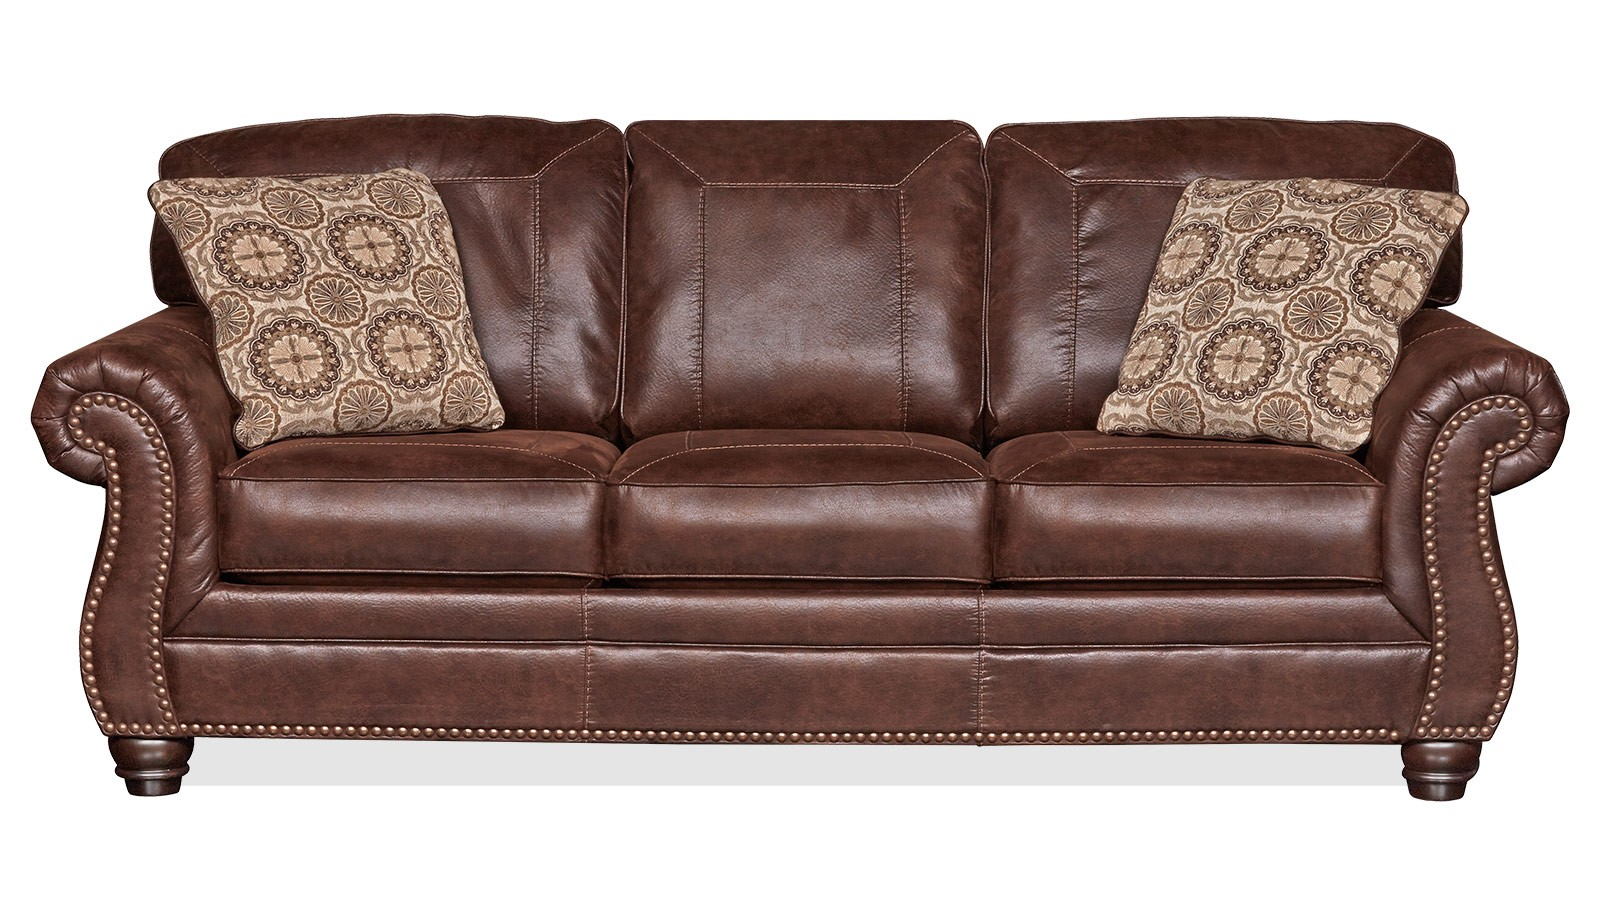 Ashley 800 Sofa/Loveseat Set